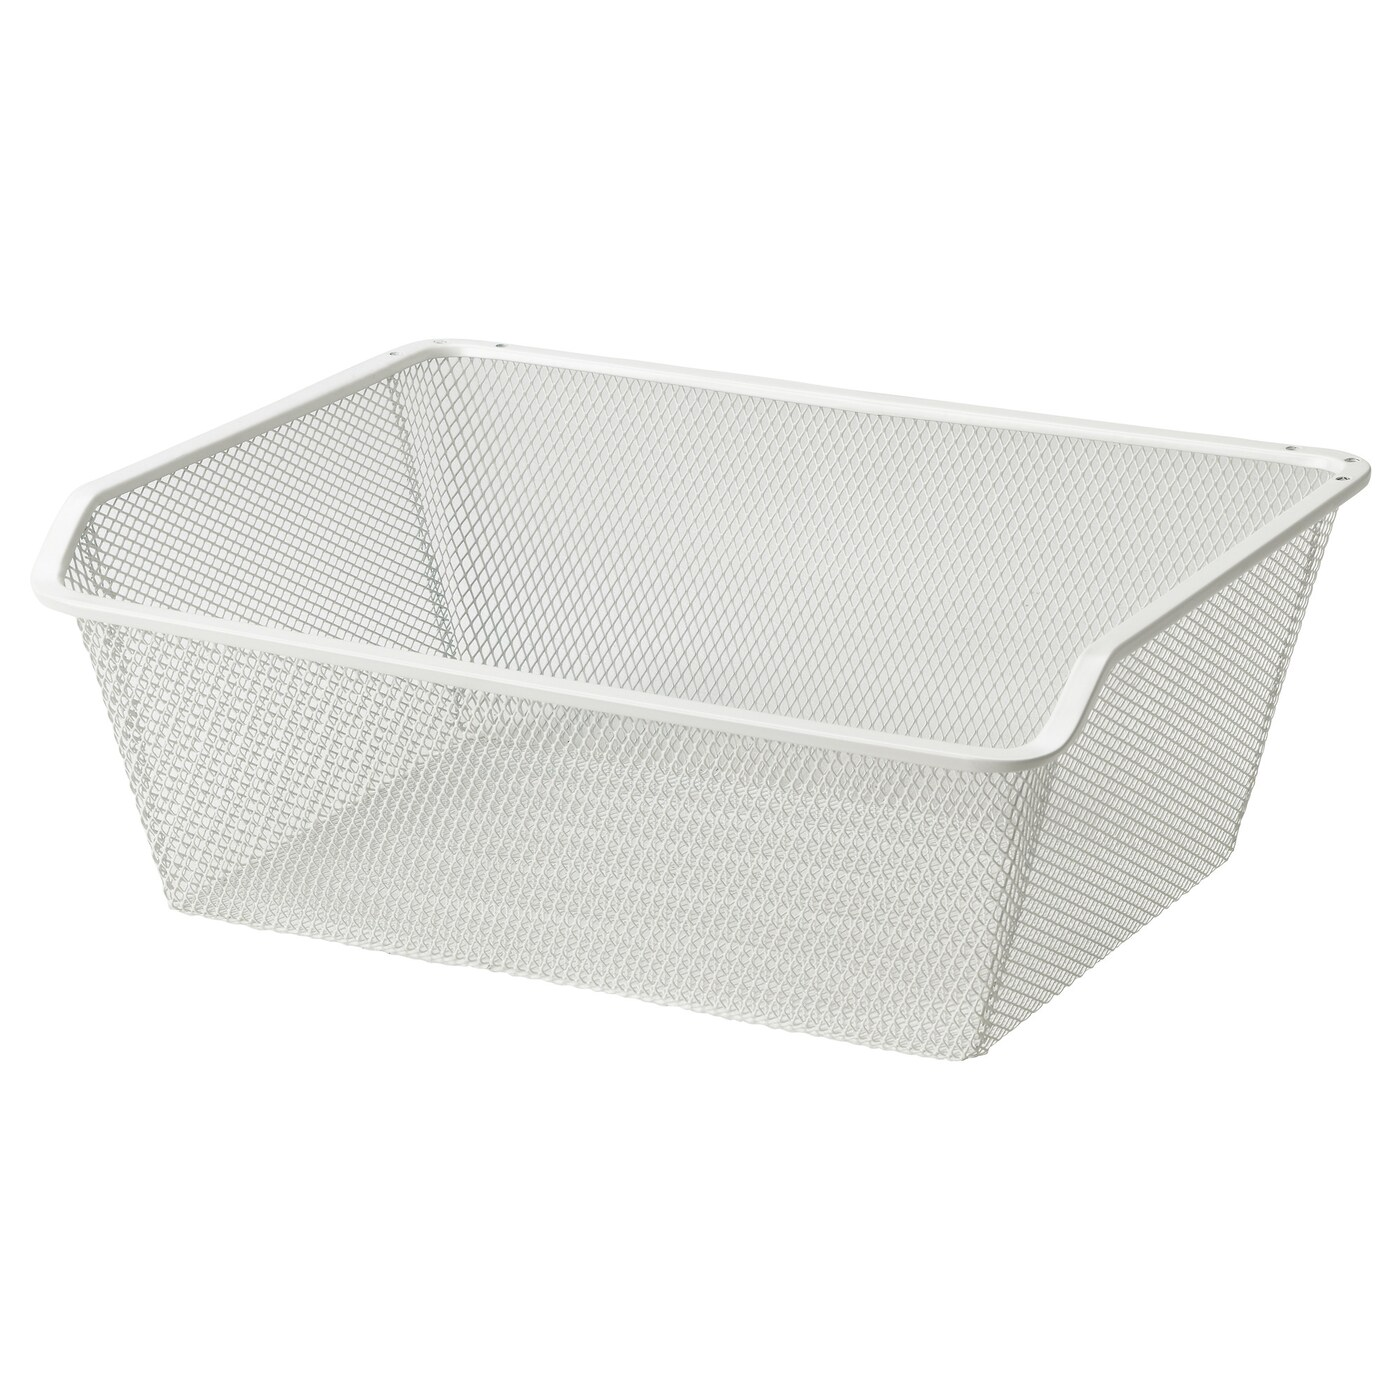 komplement mesh basket with pull out rail white 50x35 cm. Black Bedroom Furniture Sets. Home Design Ideas